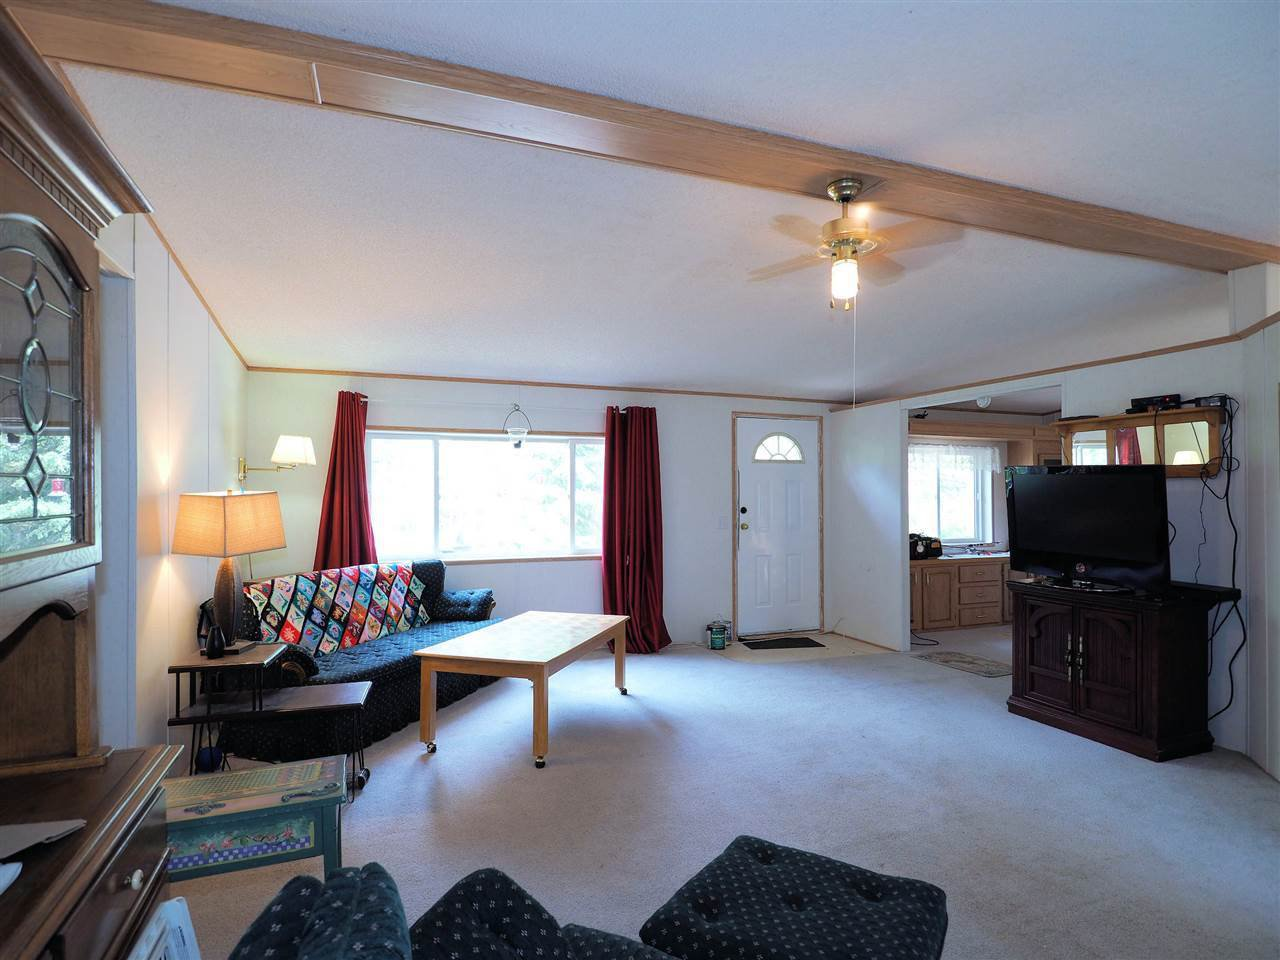 Photo 5: Photos: 4836 GLOINNZUN Drive in 108 Mile Ranch: 108 Ranch Manufactured Home for sale (100 Mile House (Zone 10))  : MLS®# R2435093